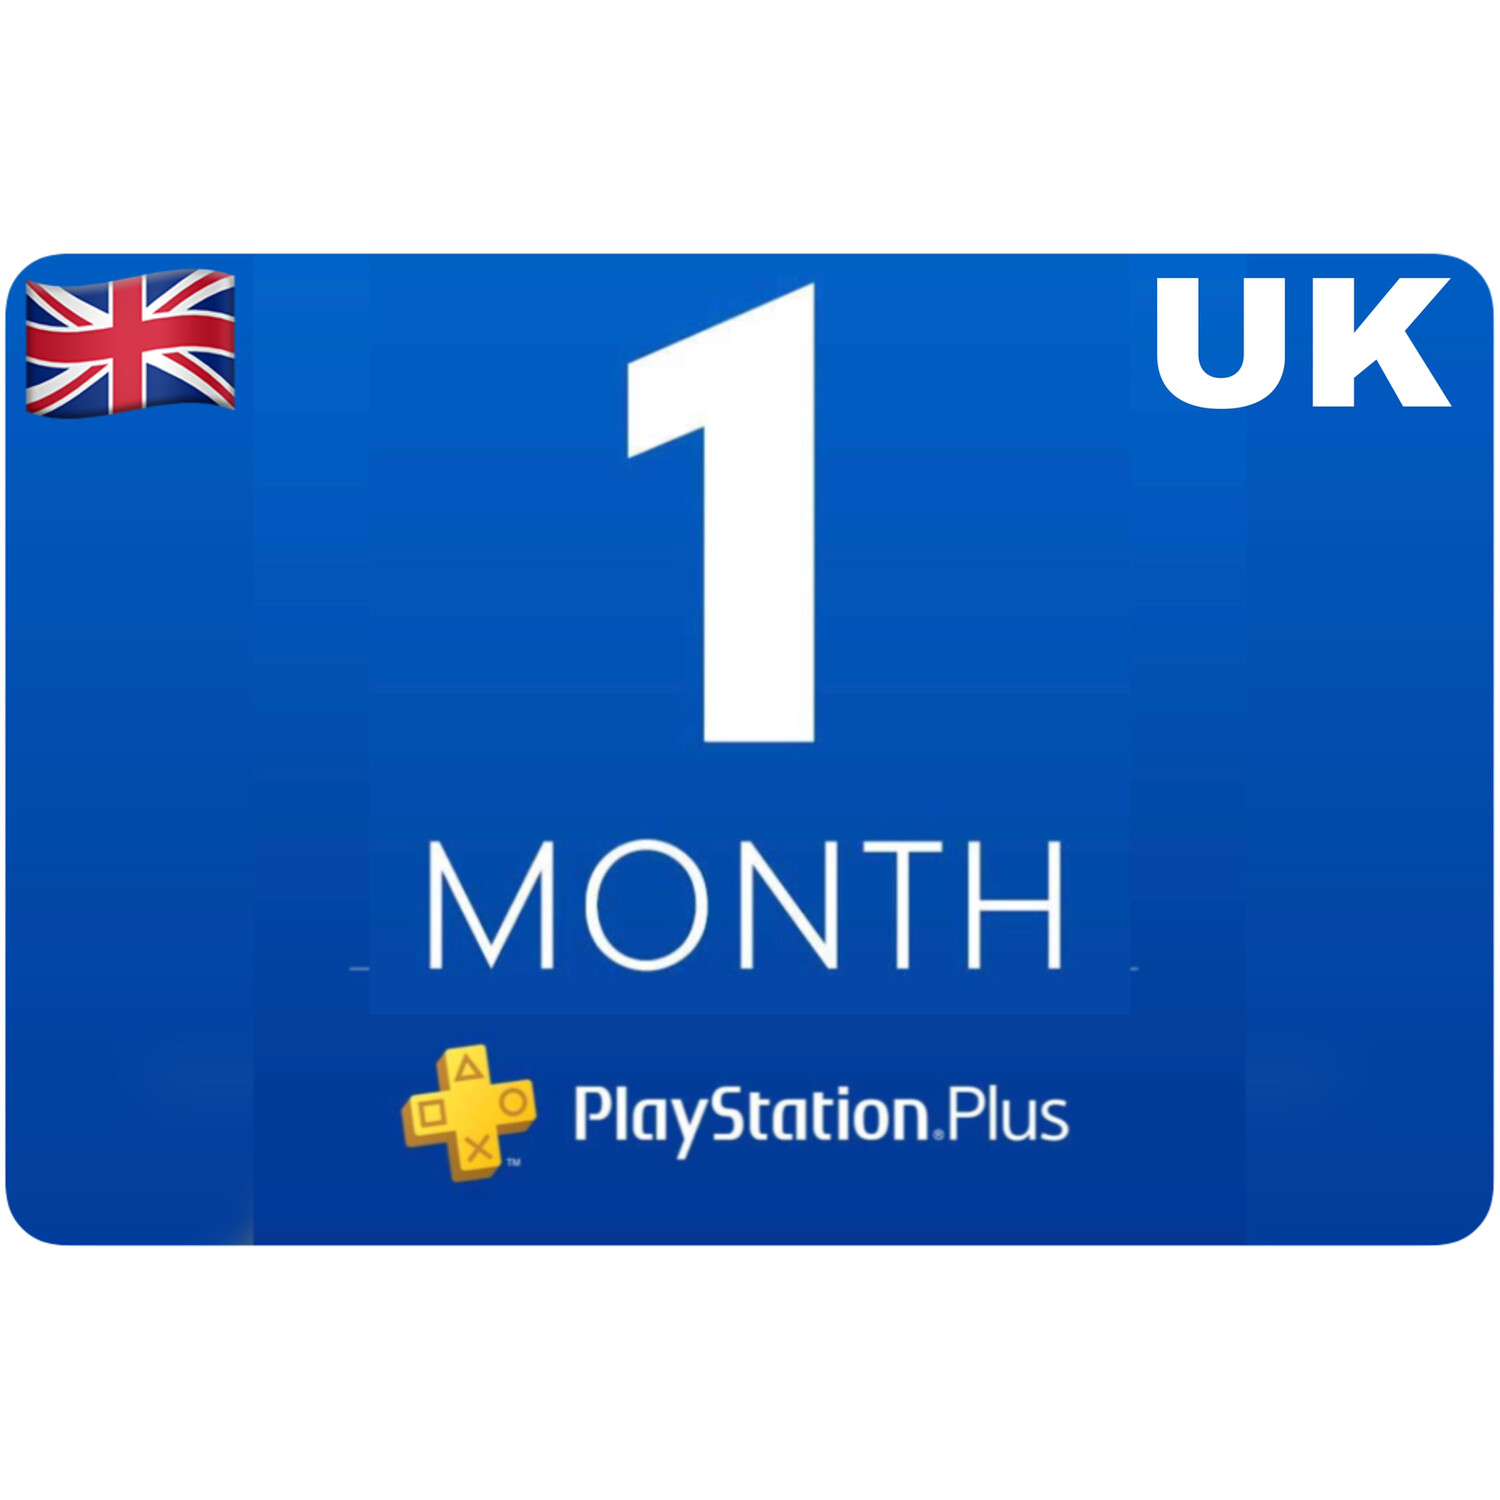 Playstation Plus Membership UK 1 Month